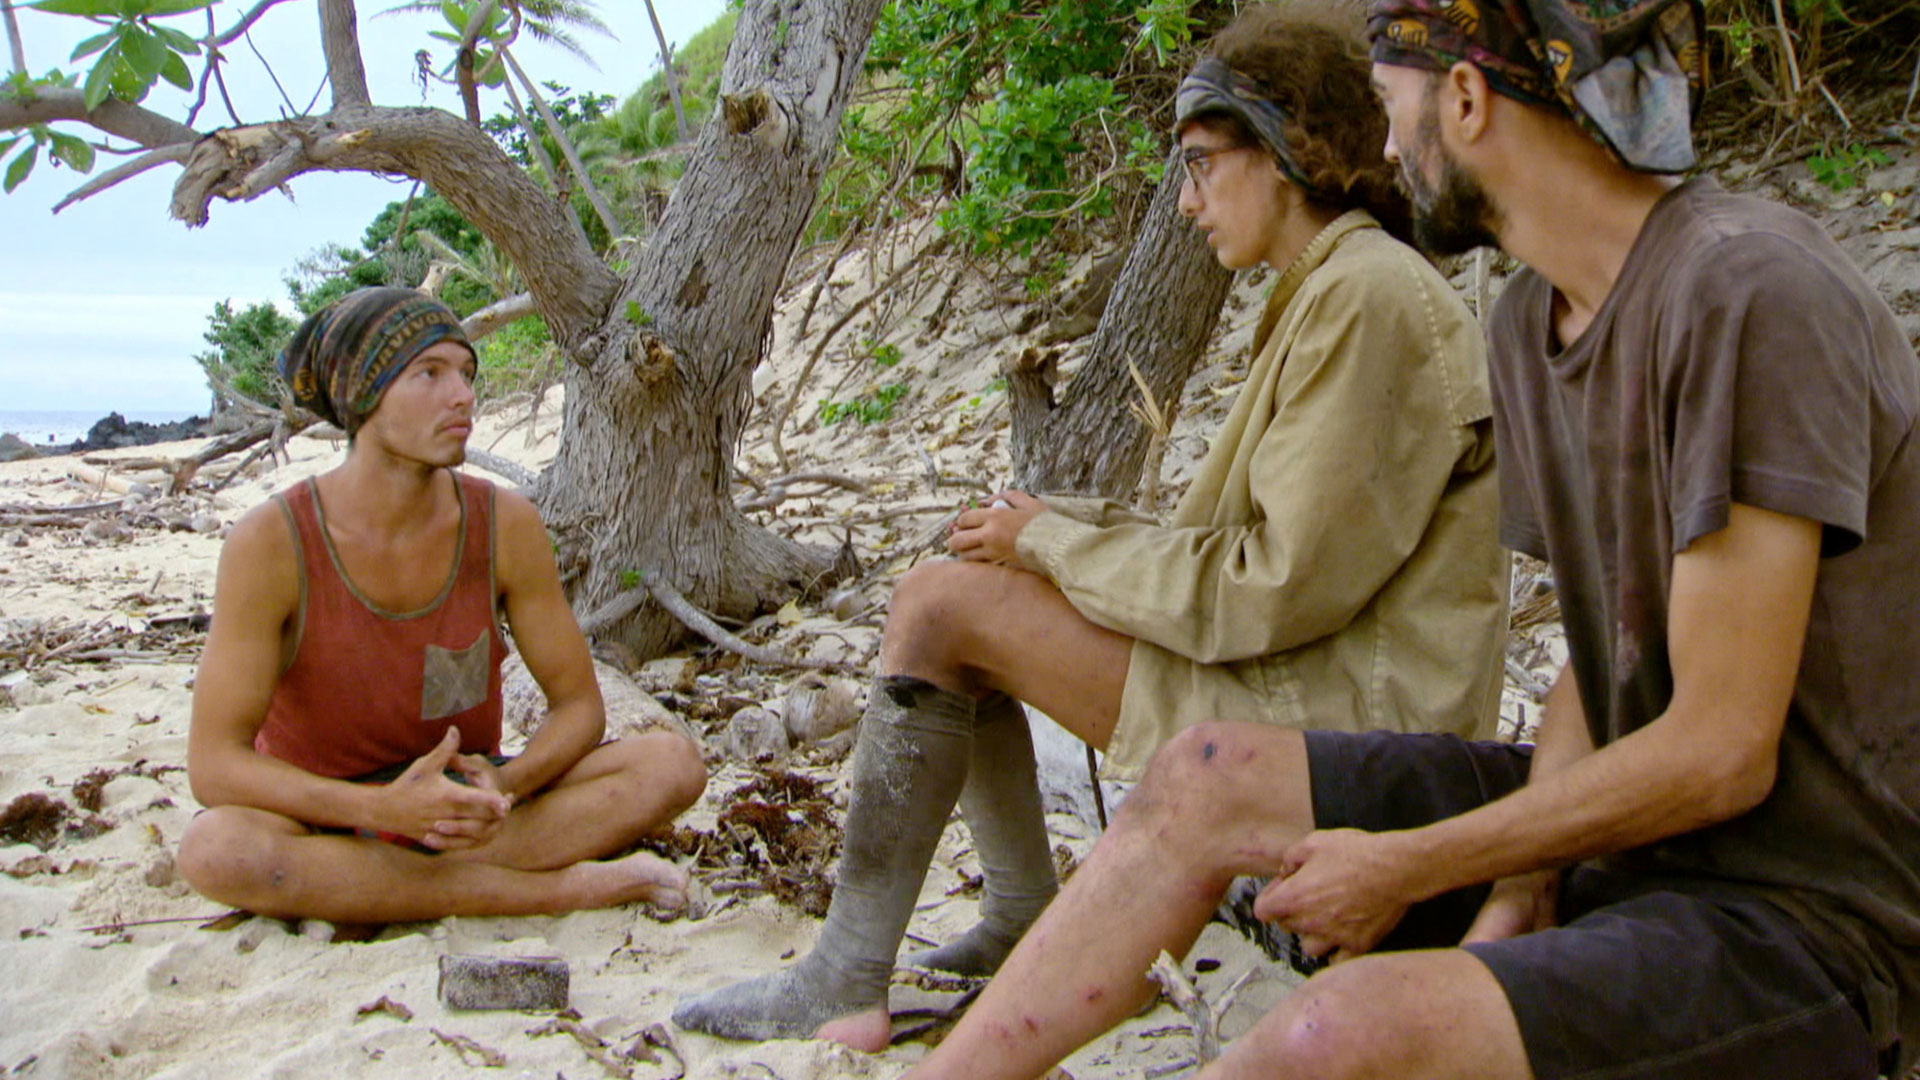 Jay talks to Hannah and David from his spot in the sand.